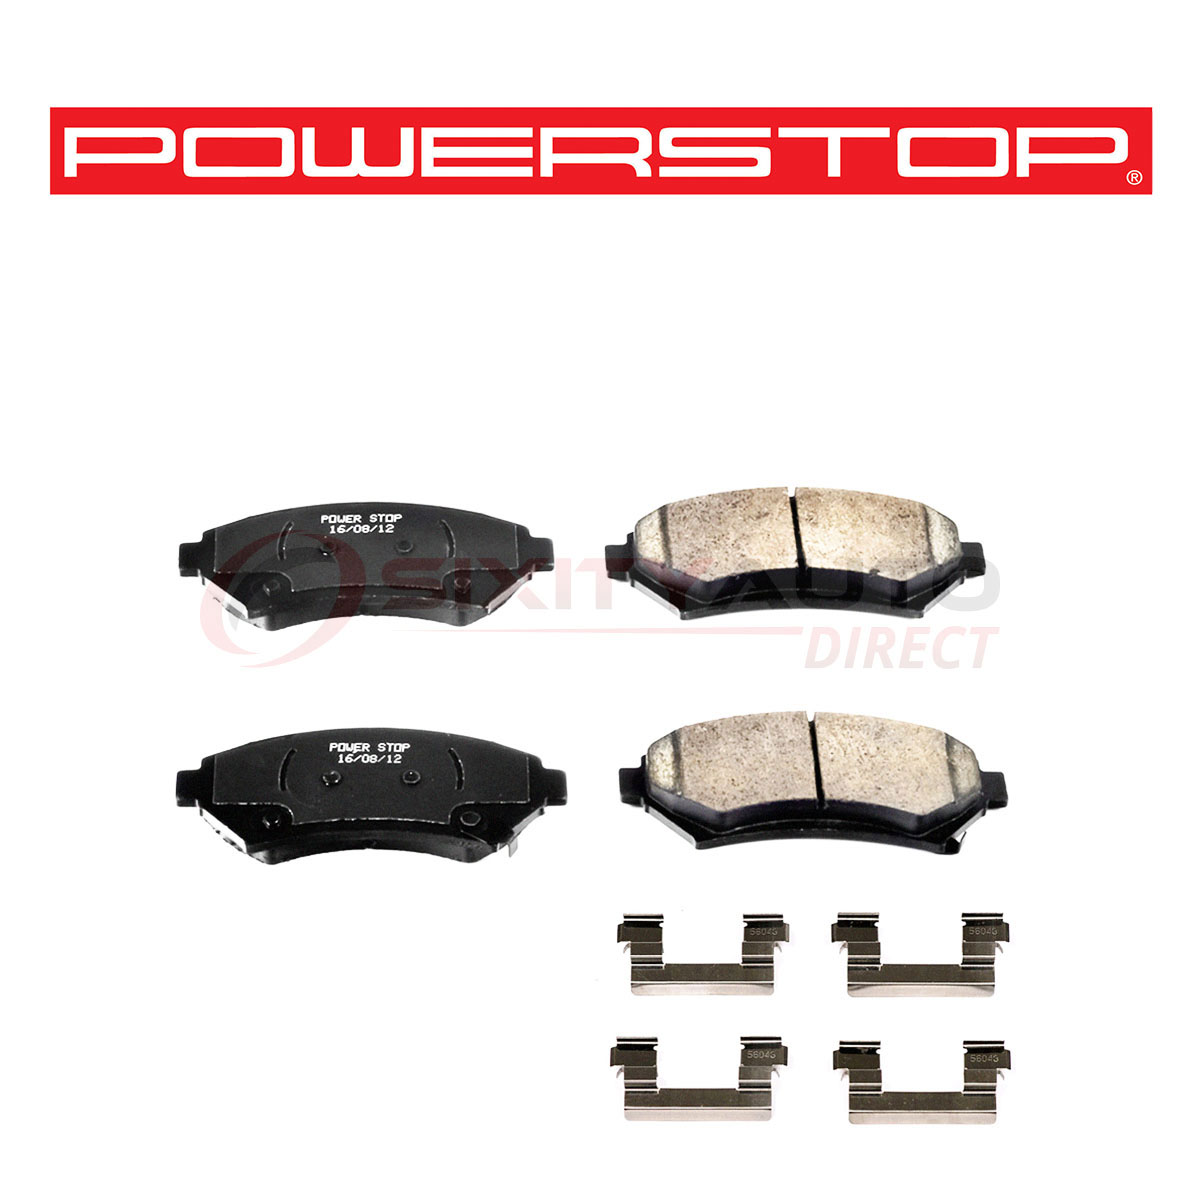 Hawk HB131M.595 Black Motorsports Brake Pads Front For 94-96 Chevy Impala NEW